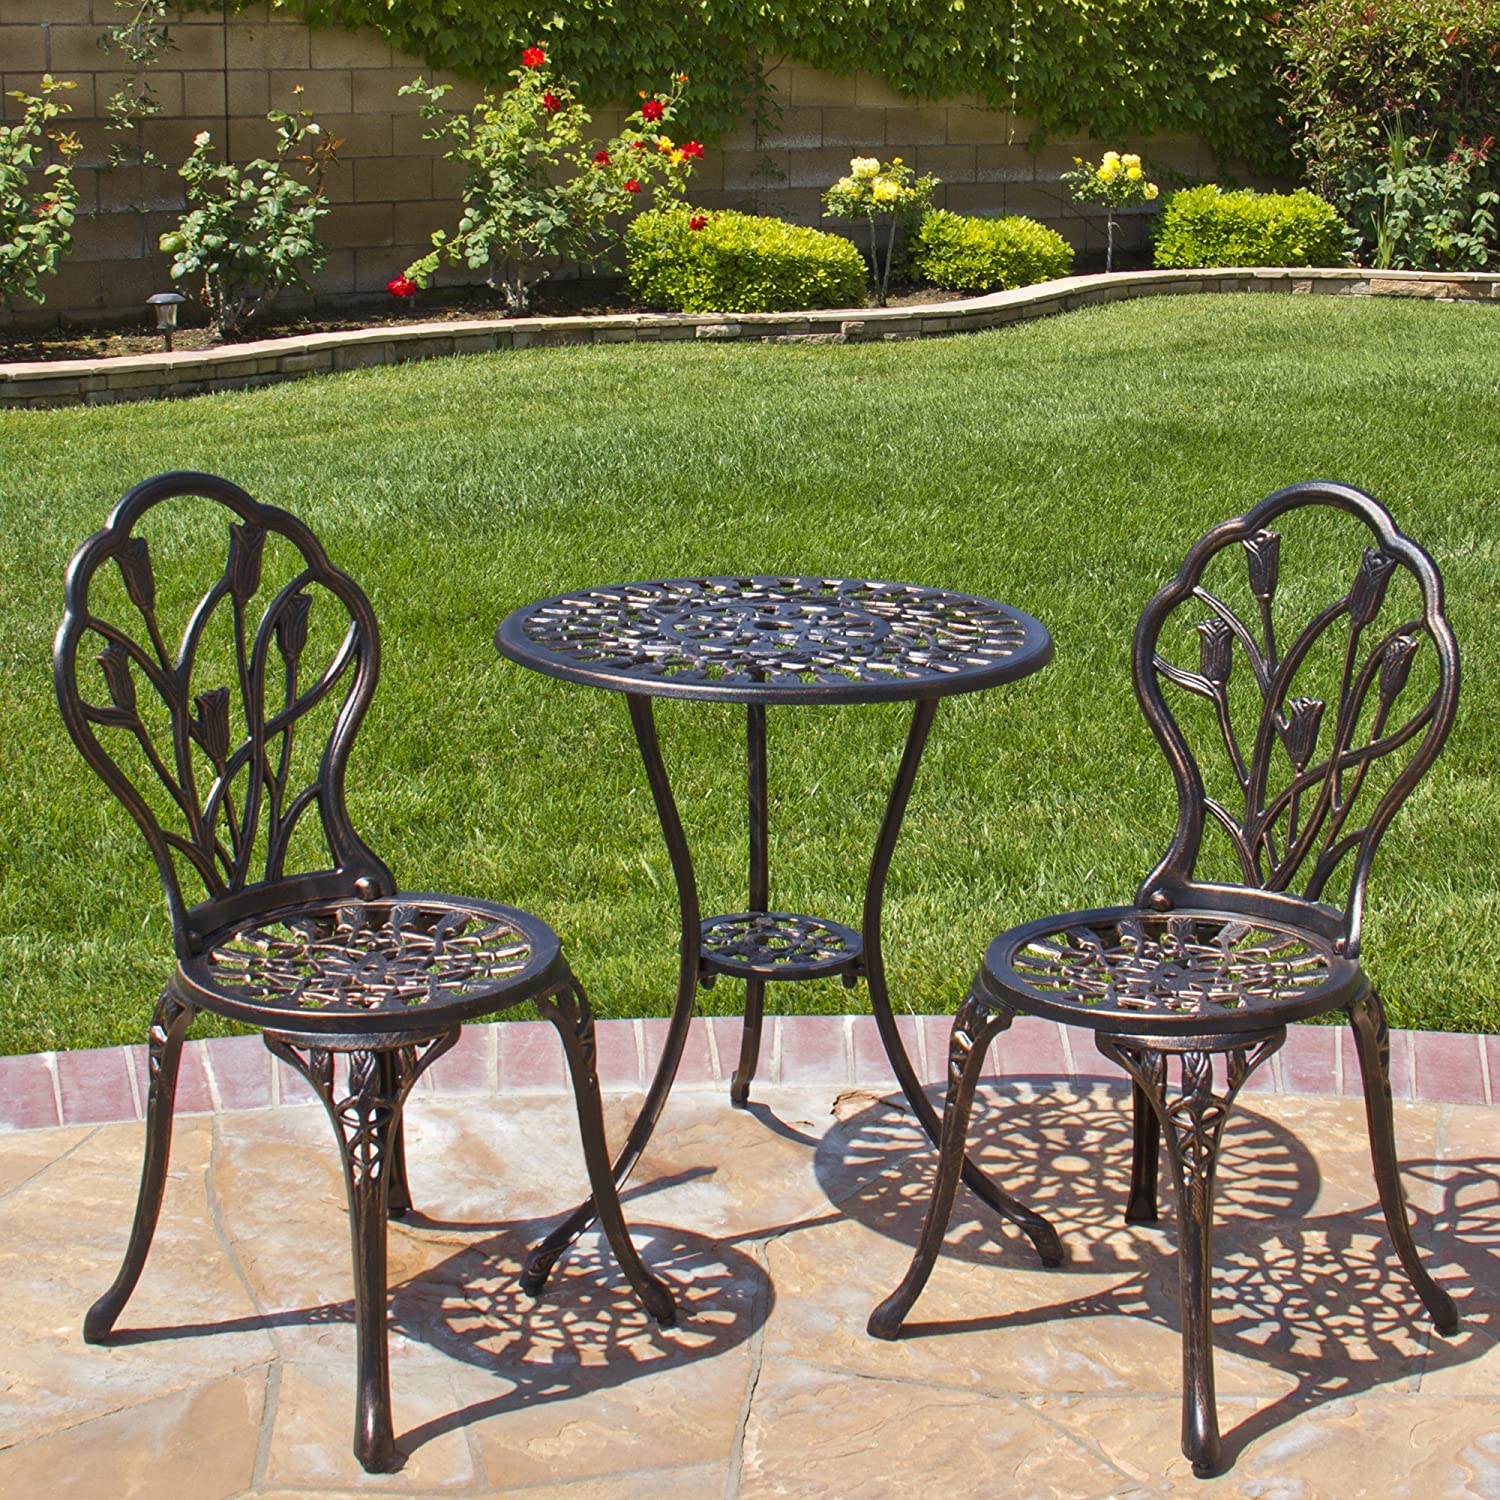 Amazon.com: Best Choice Products Outdoor Patio Furniture Tulip Design Cast  Aluminum 3 Piece Bistro Set in Antique Copper: Garden & Outdoor - Amazon.com: Best Choice Products Outdoor Patio Furniture Tulip